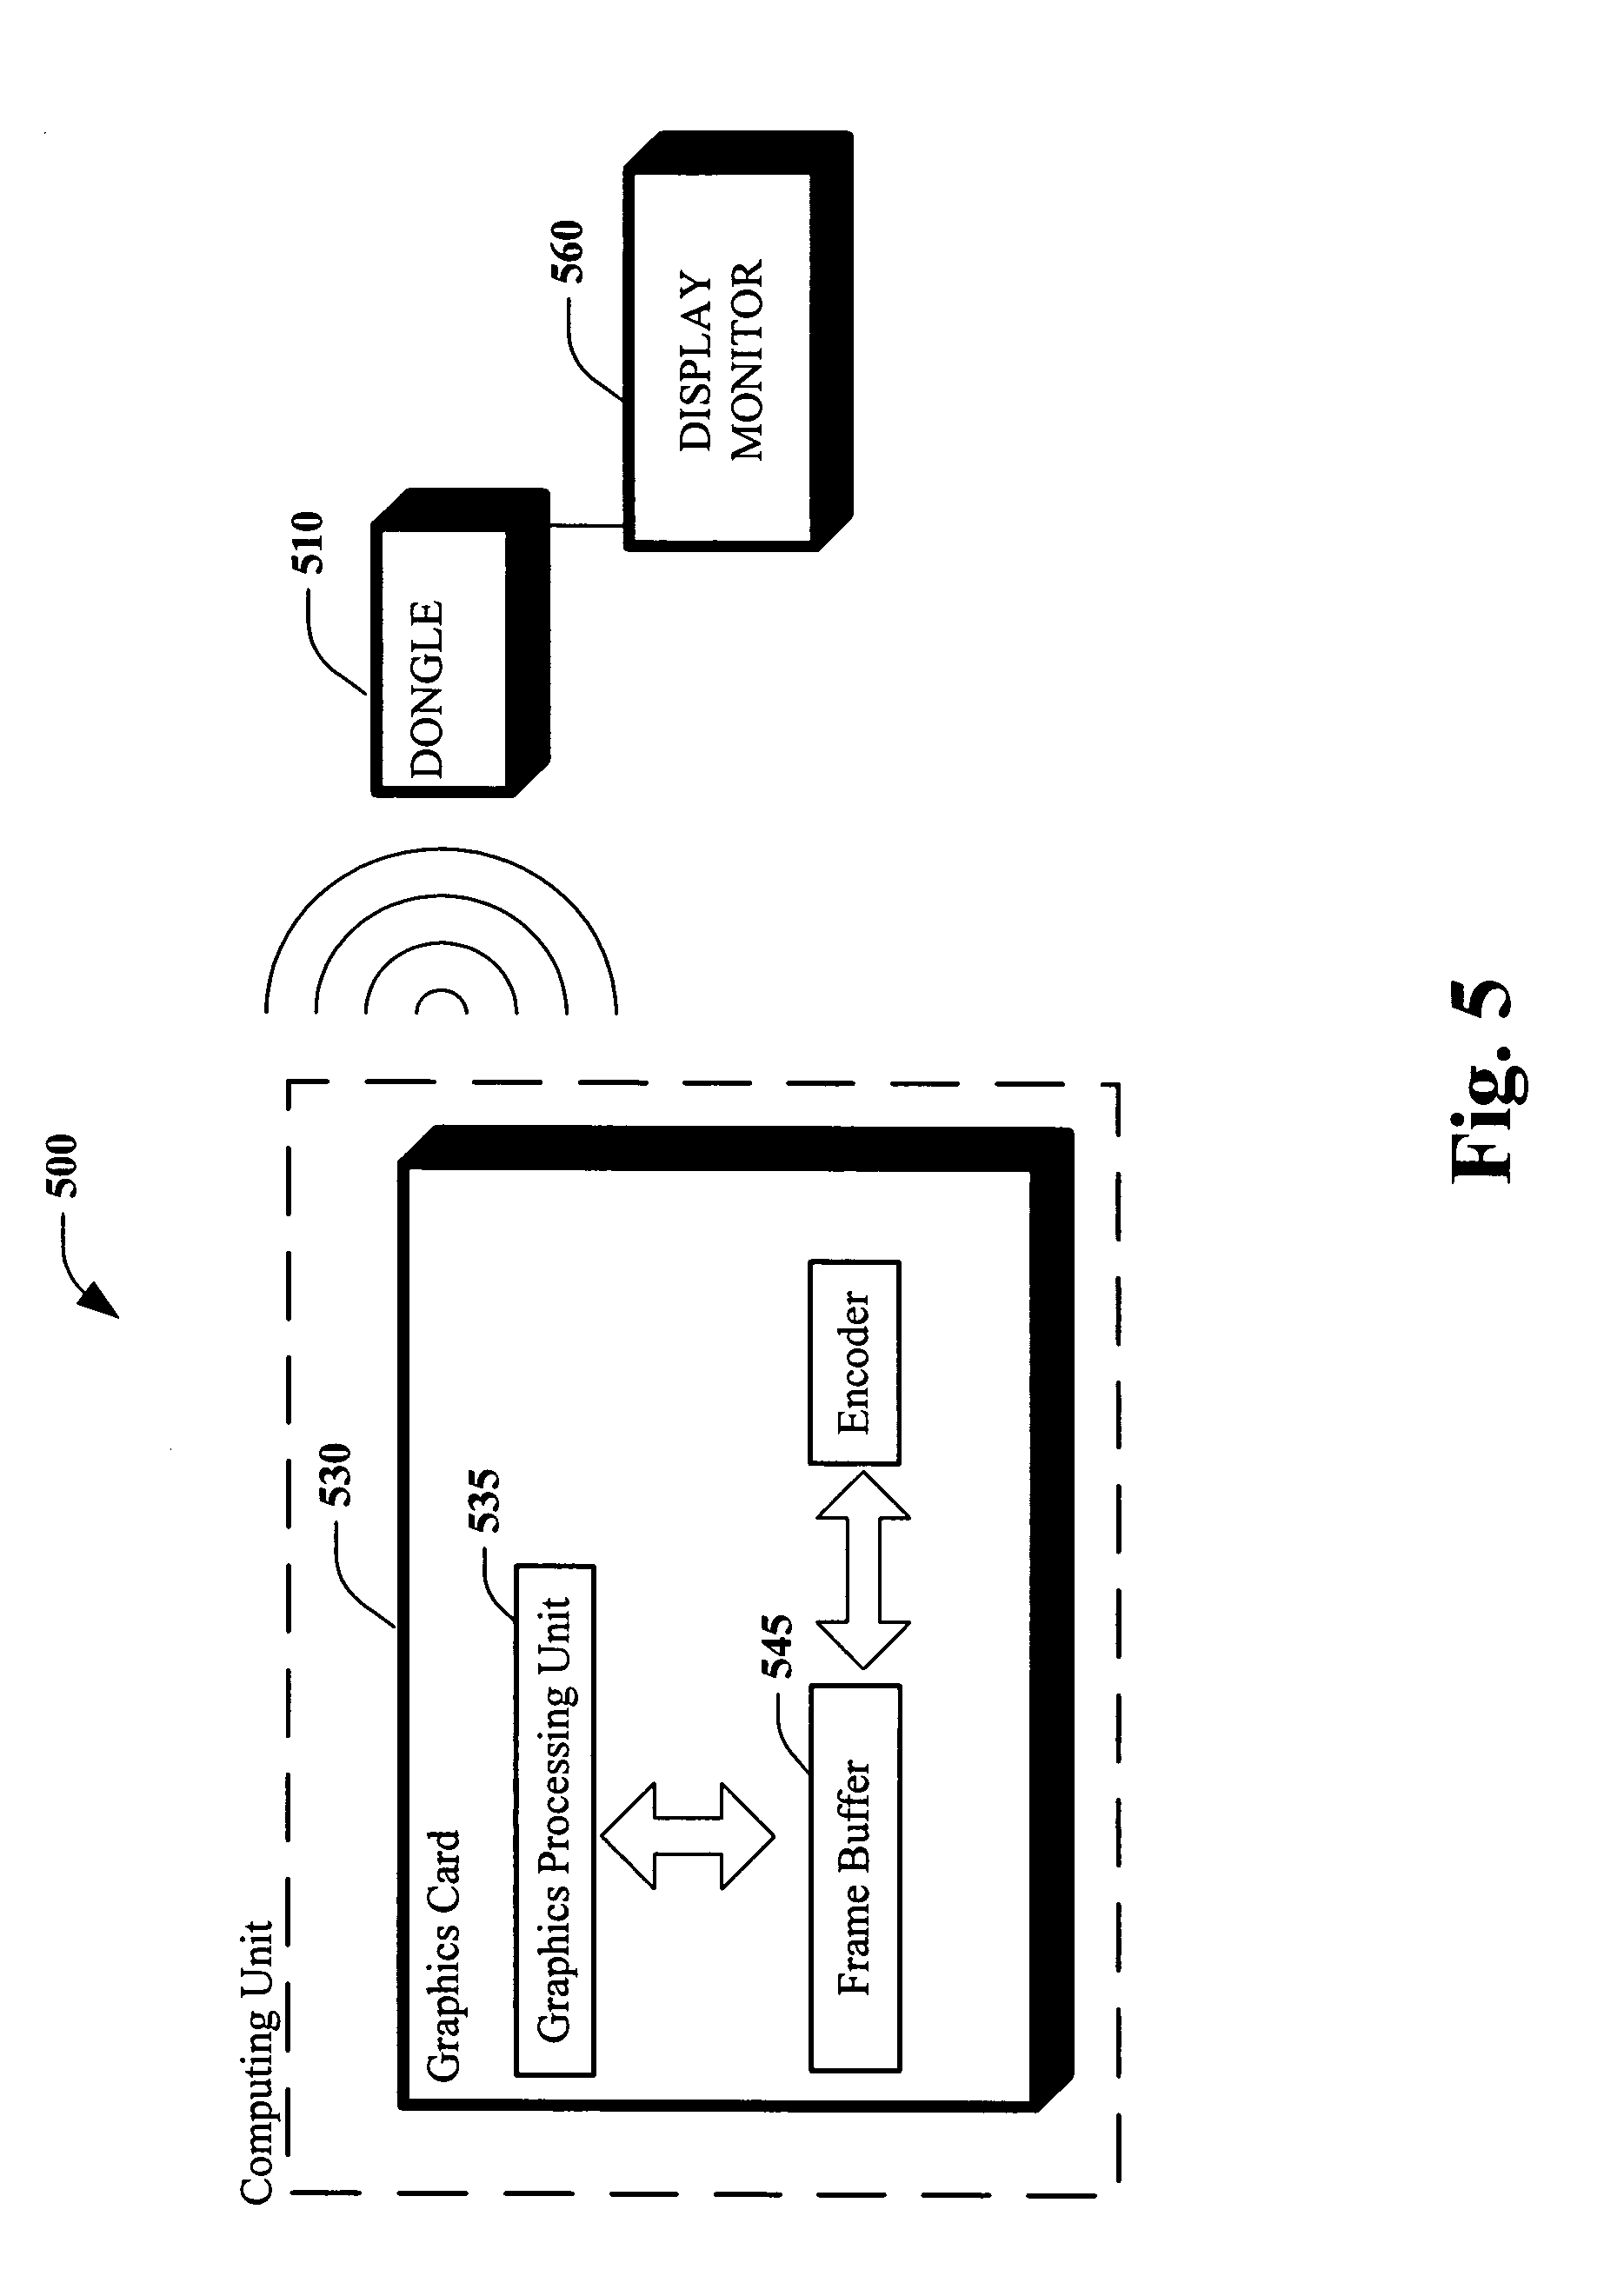 Patent Us20060164328 Method And Apparatus For Wireless Display Gameport To Usb Wiring Diagram Drawing